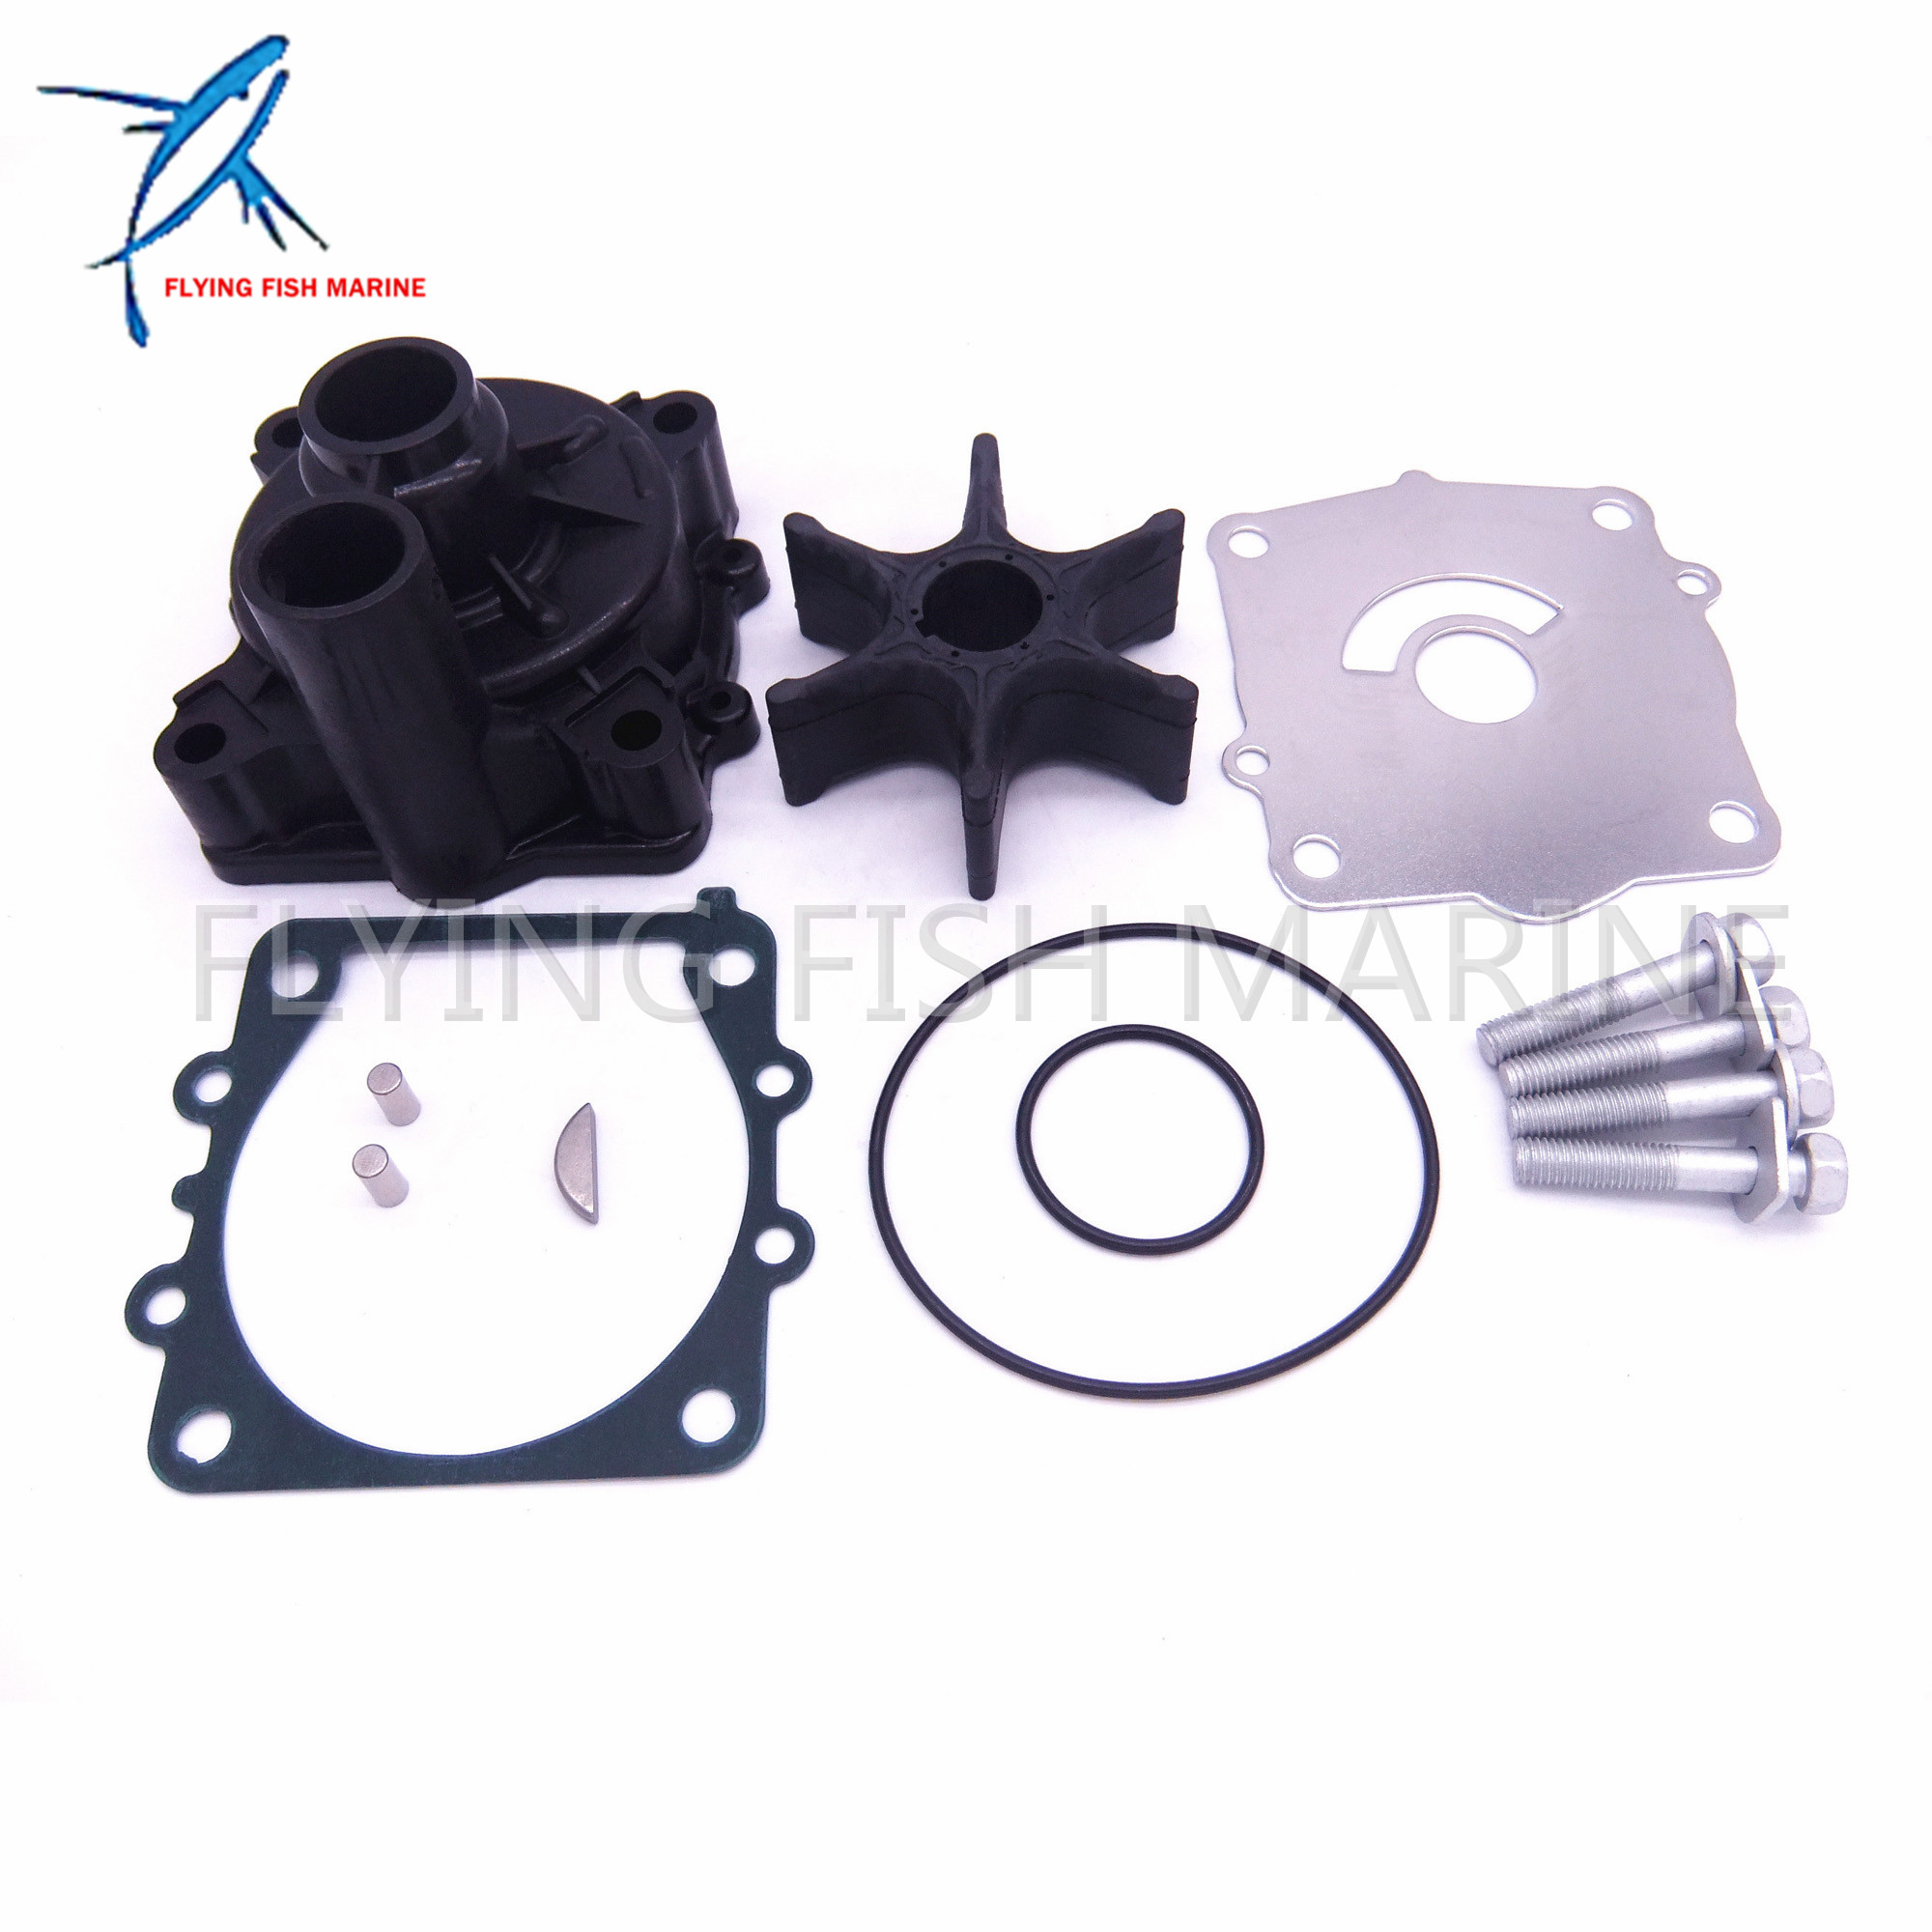 68V-W0078 68V-W0078-00 Water Pump Kit For Yamaha 115HP F115 Boat Outboard Motors68V-W0078 68V-W0078-00 Water Pump Kit For Yamaha 115HP F115 Boat Outboard Motors